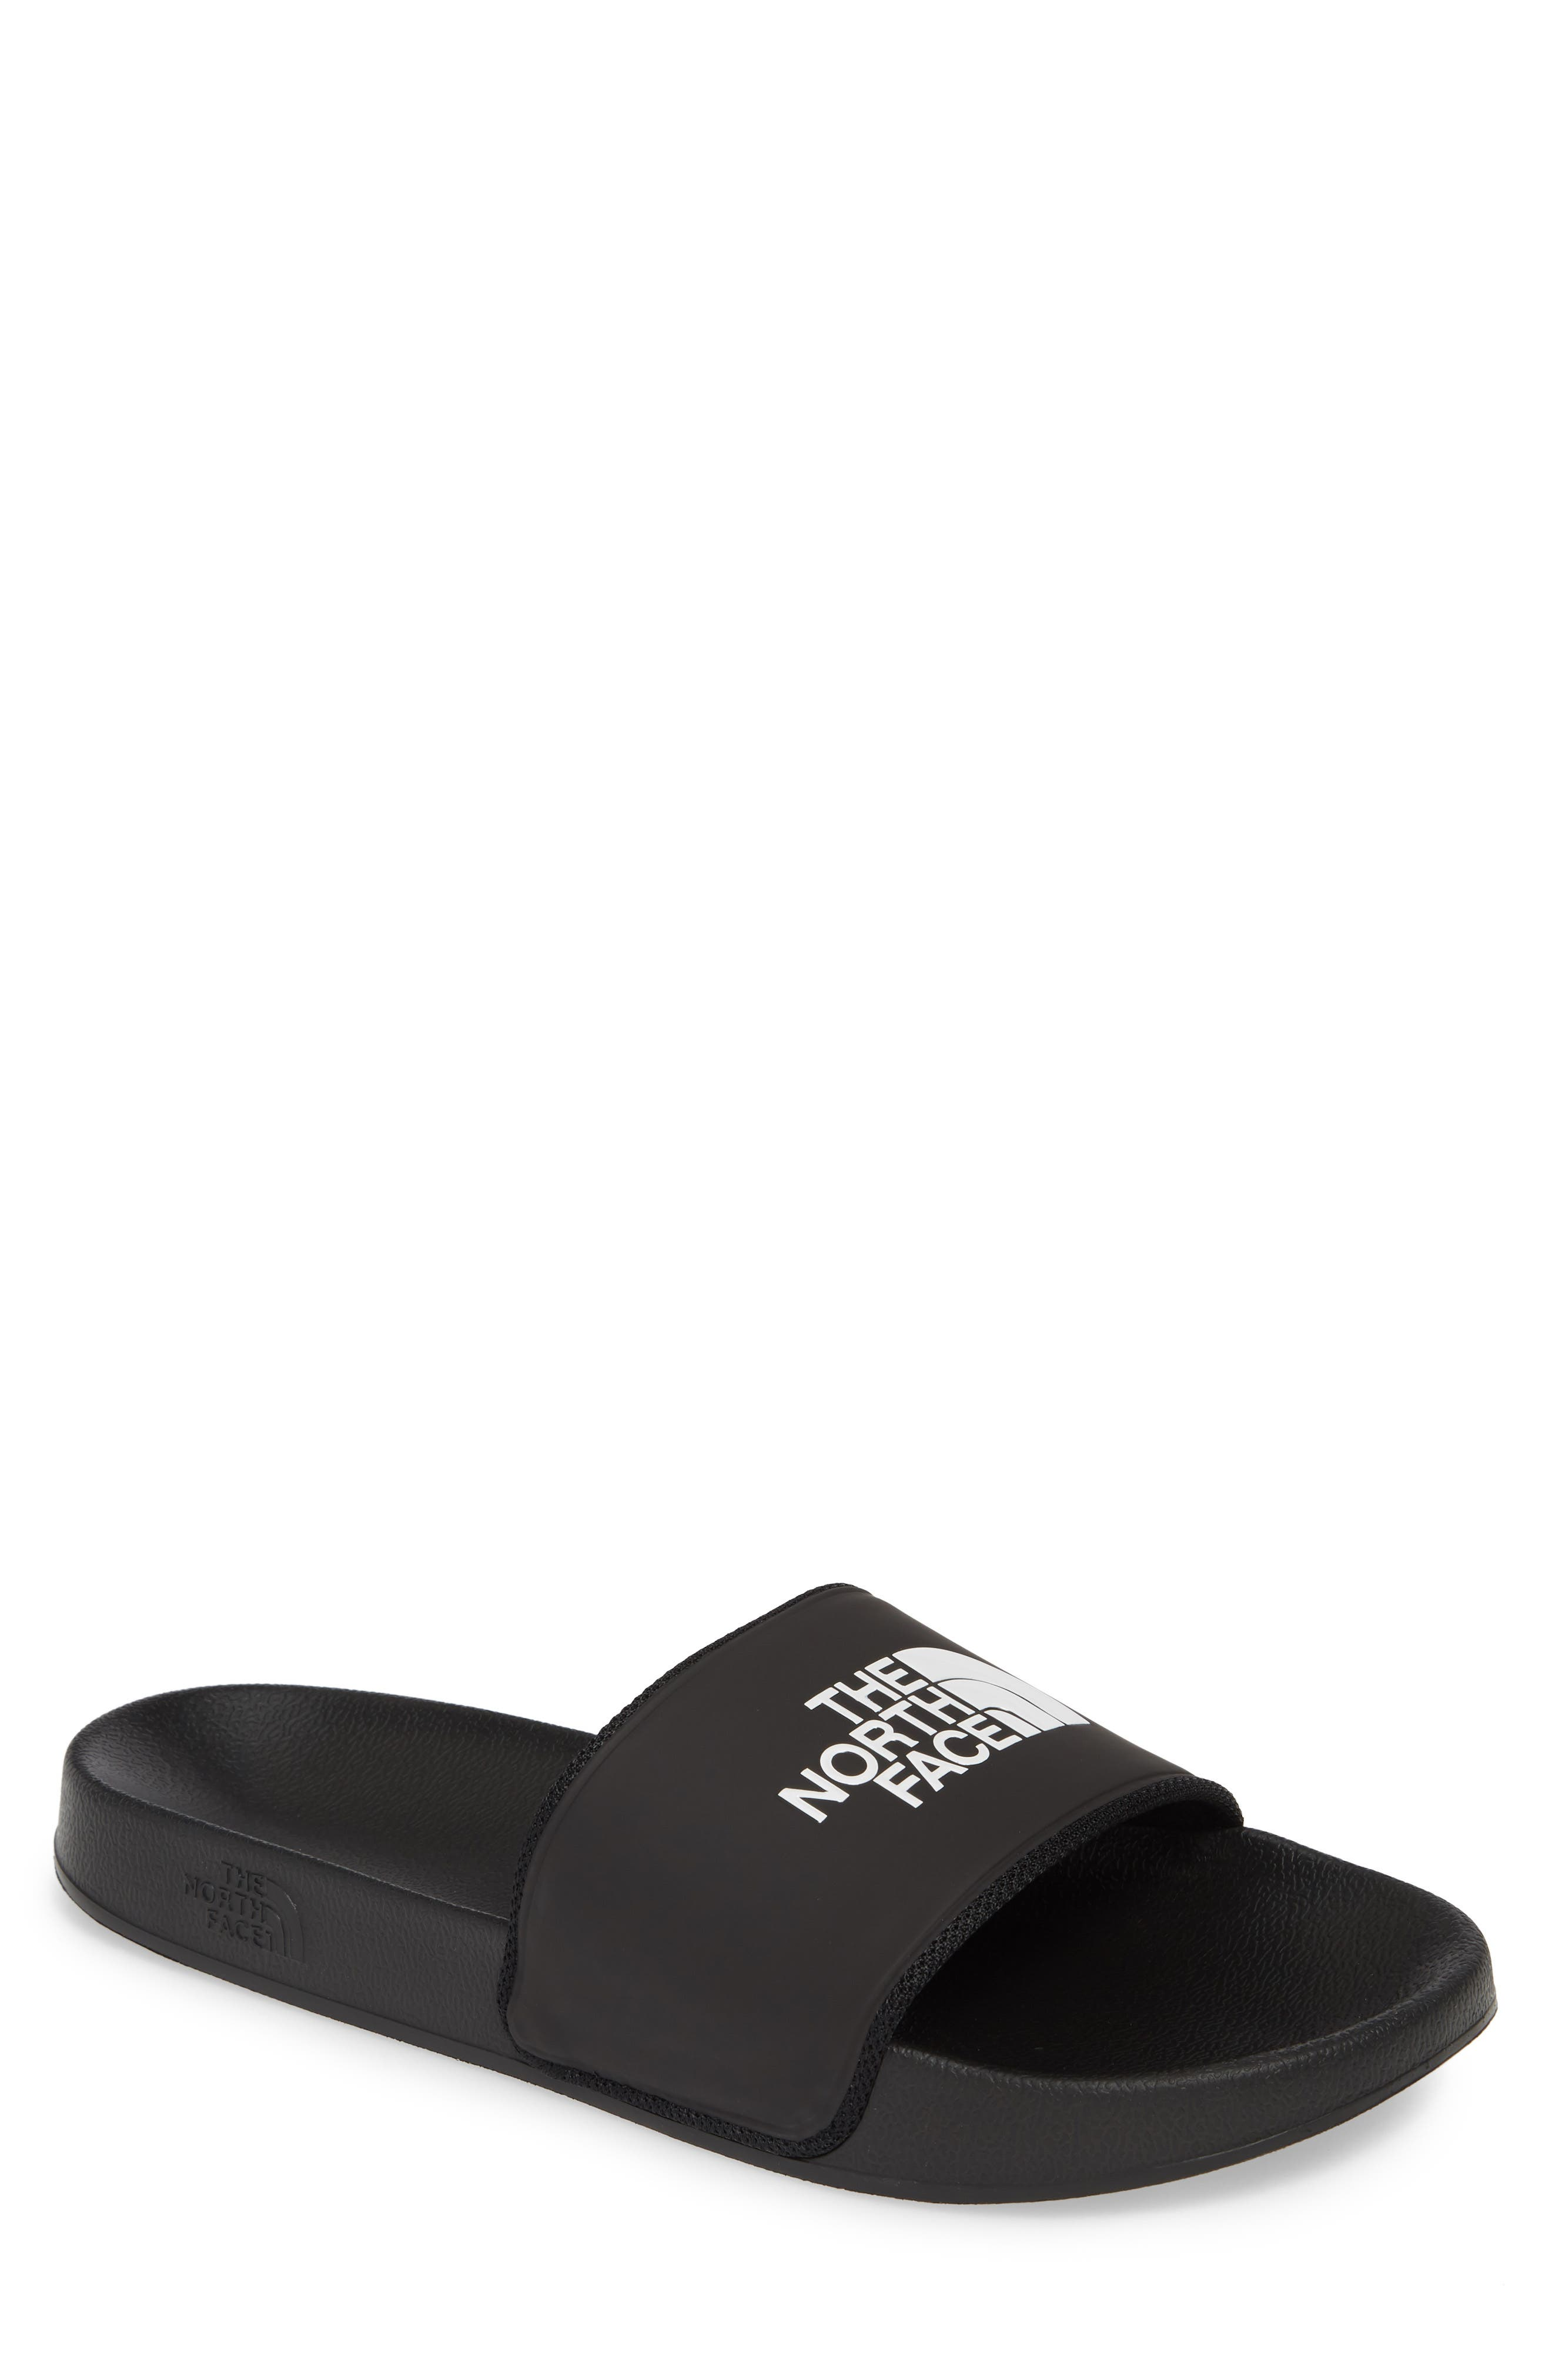 08111b70576b Men s The North Face Sandals